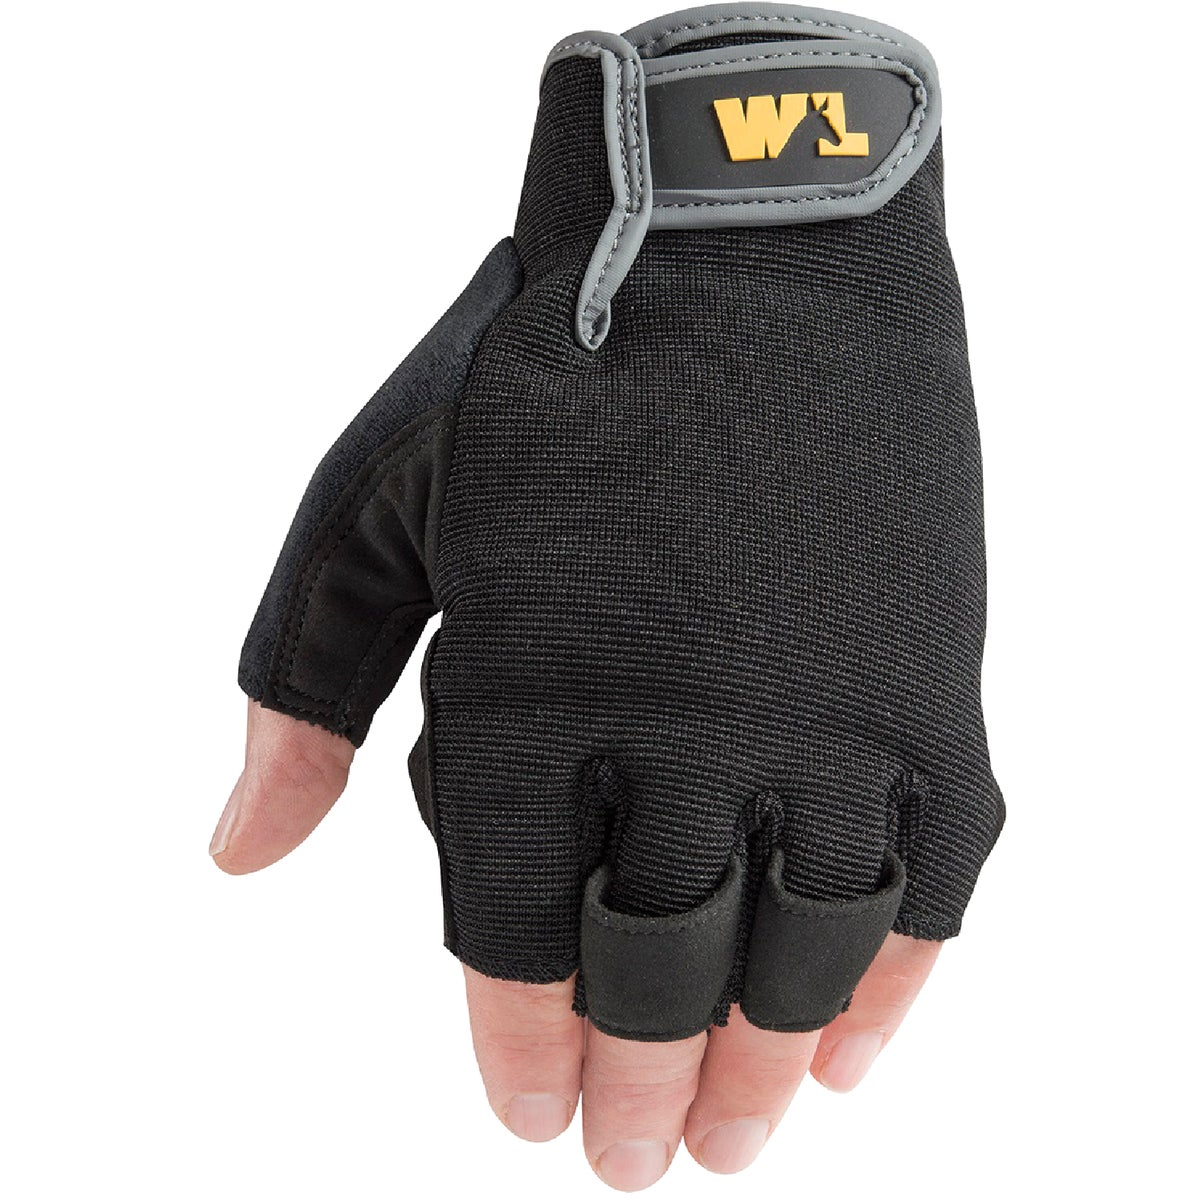 LRG FINGERLESS GLOVE - 836L by Wells Lamont